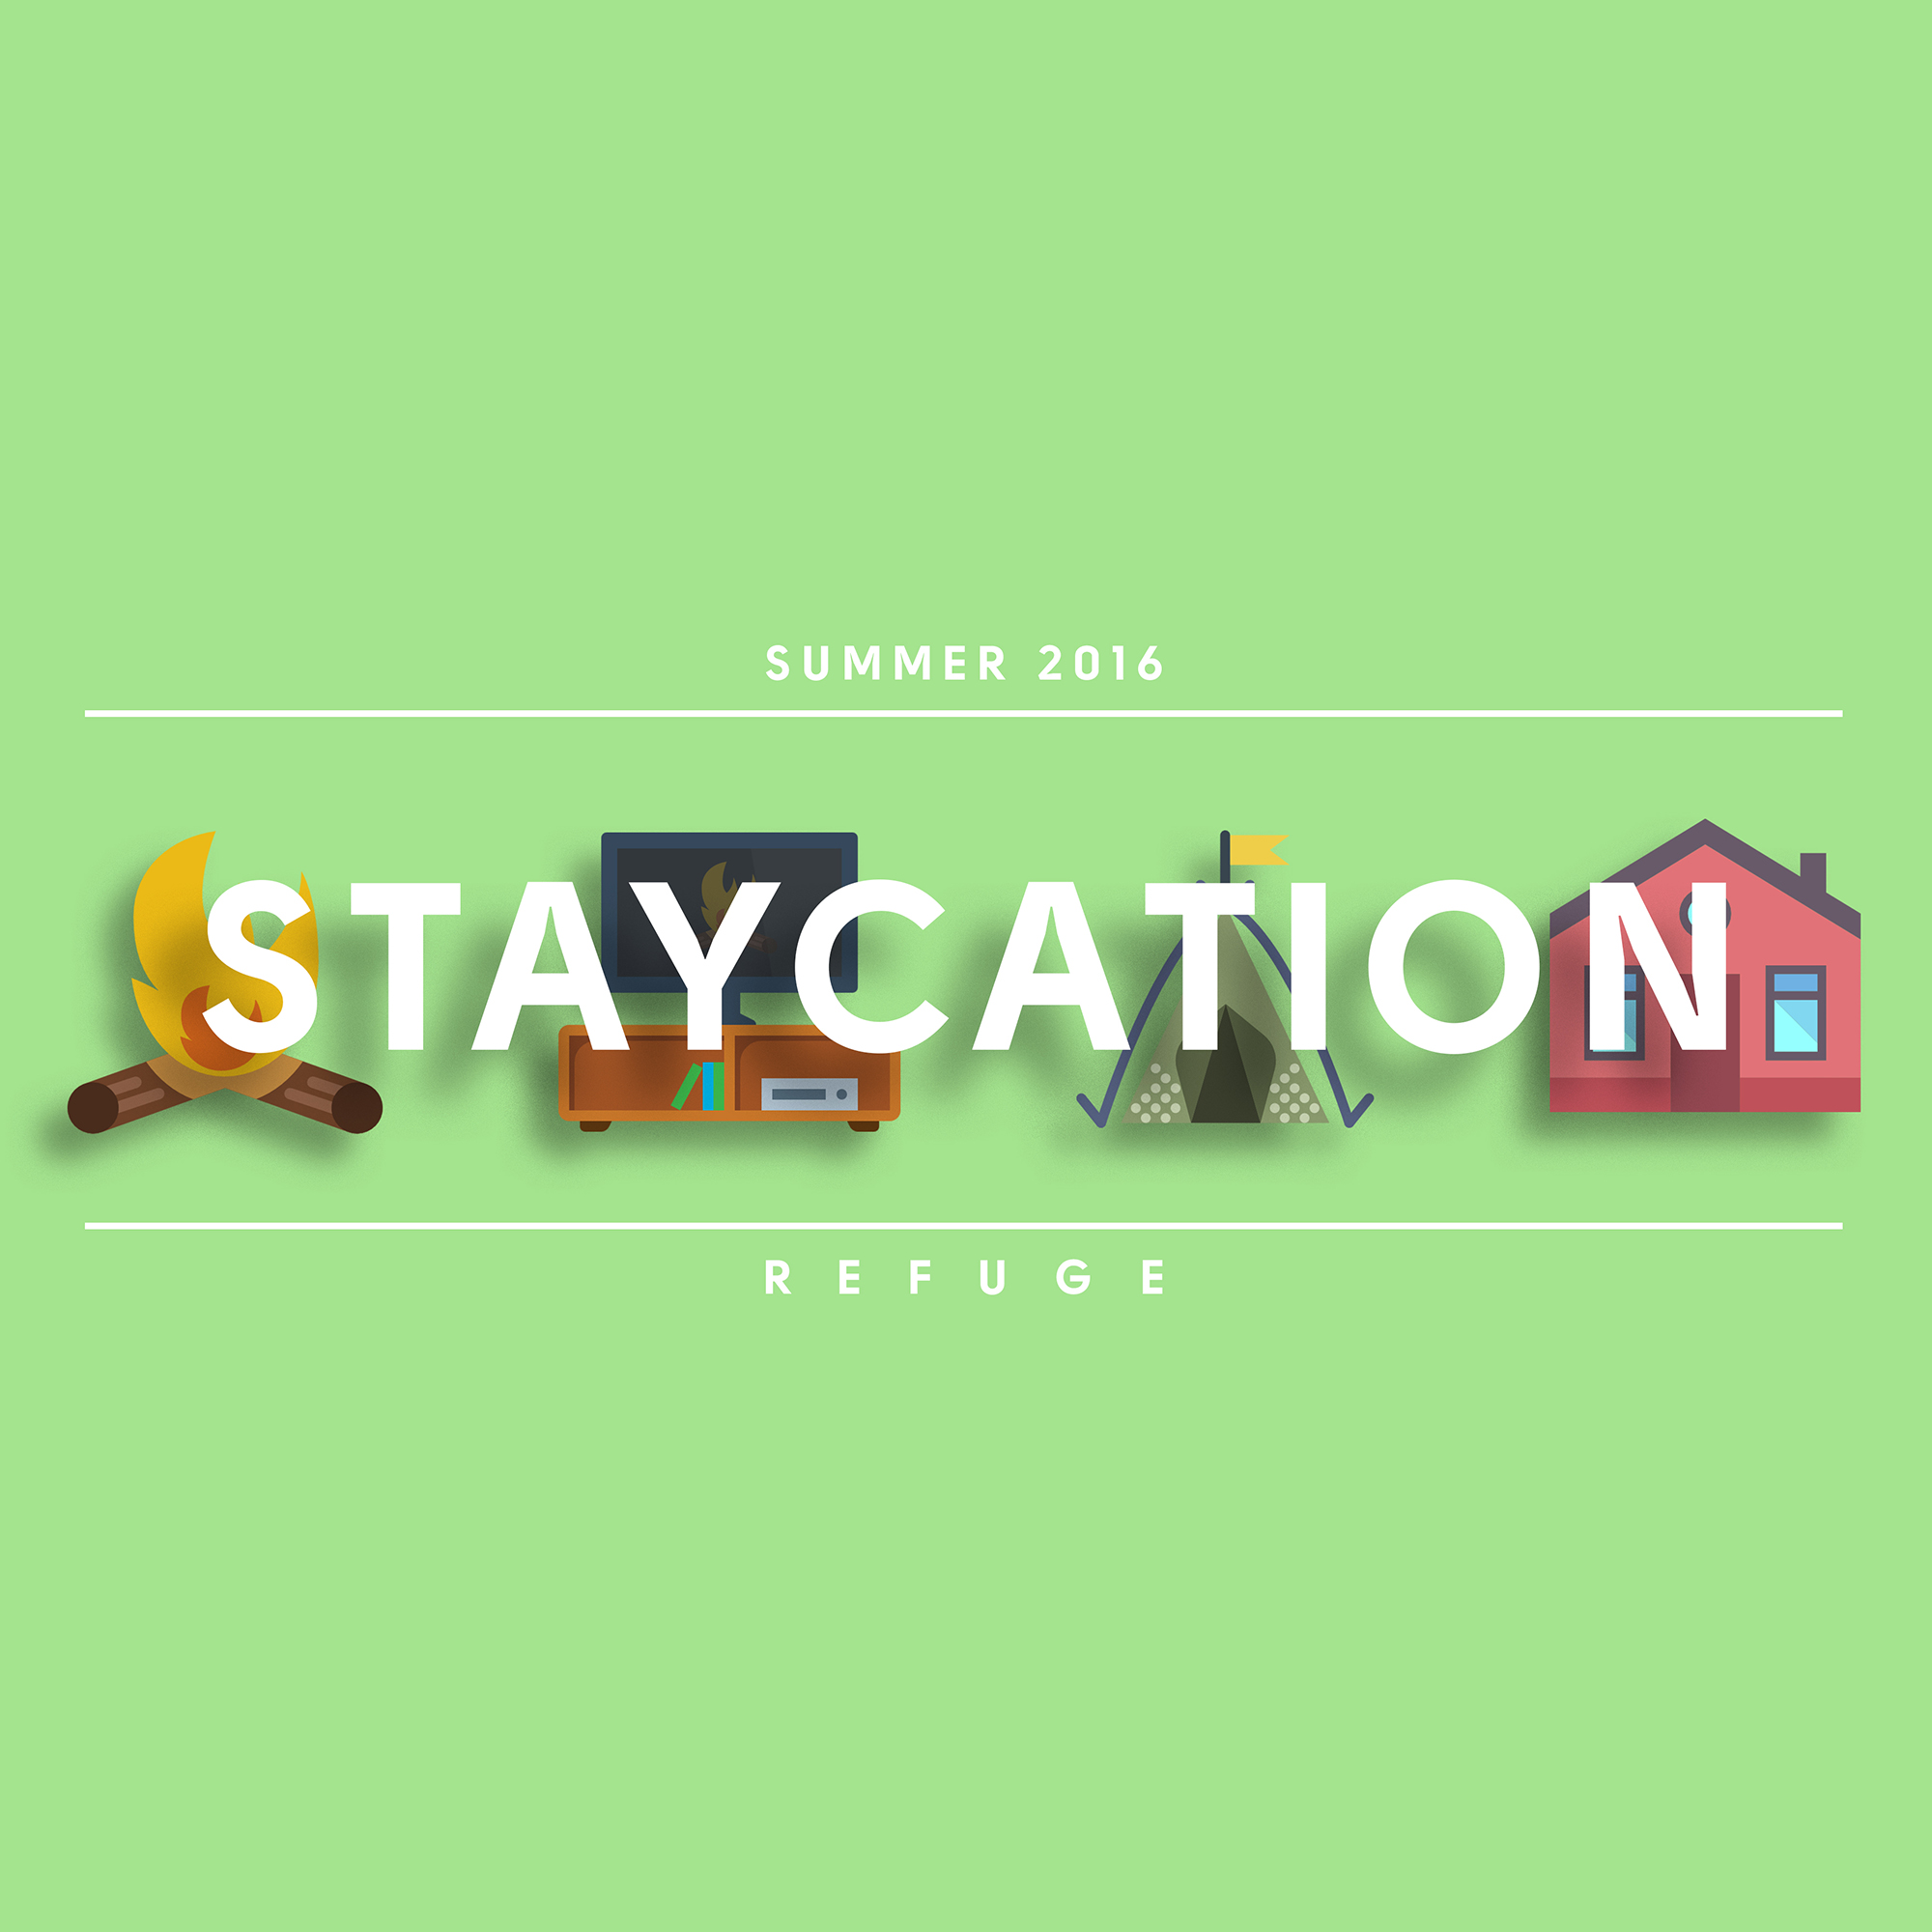 STAYCATION_WEB-1.jpg